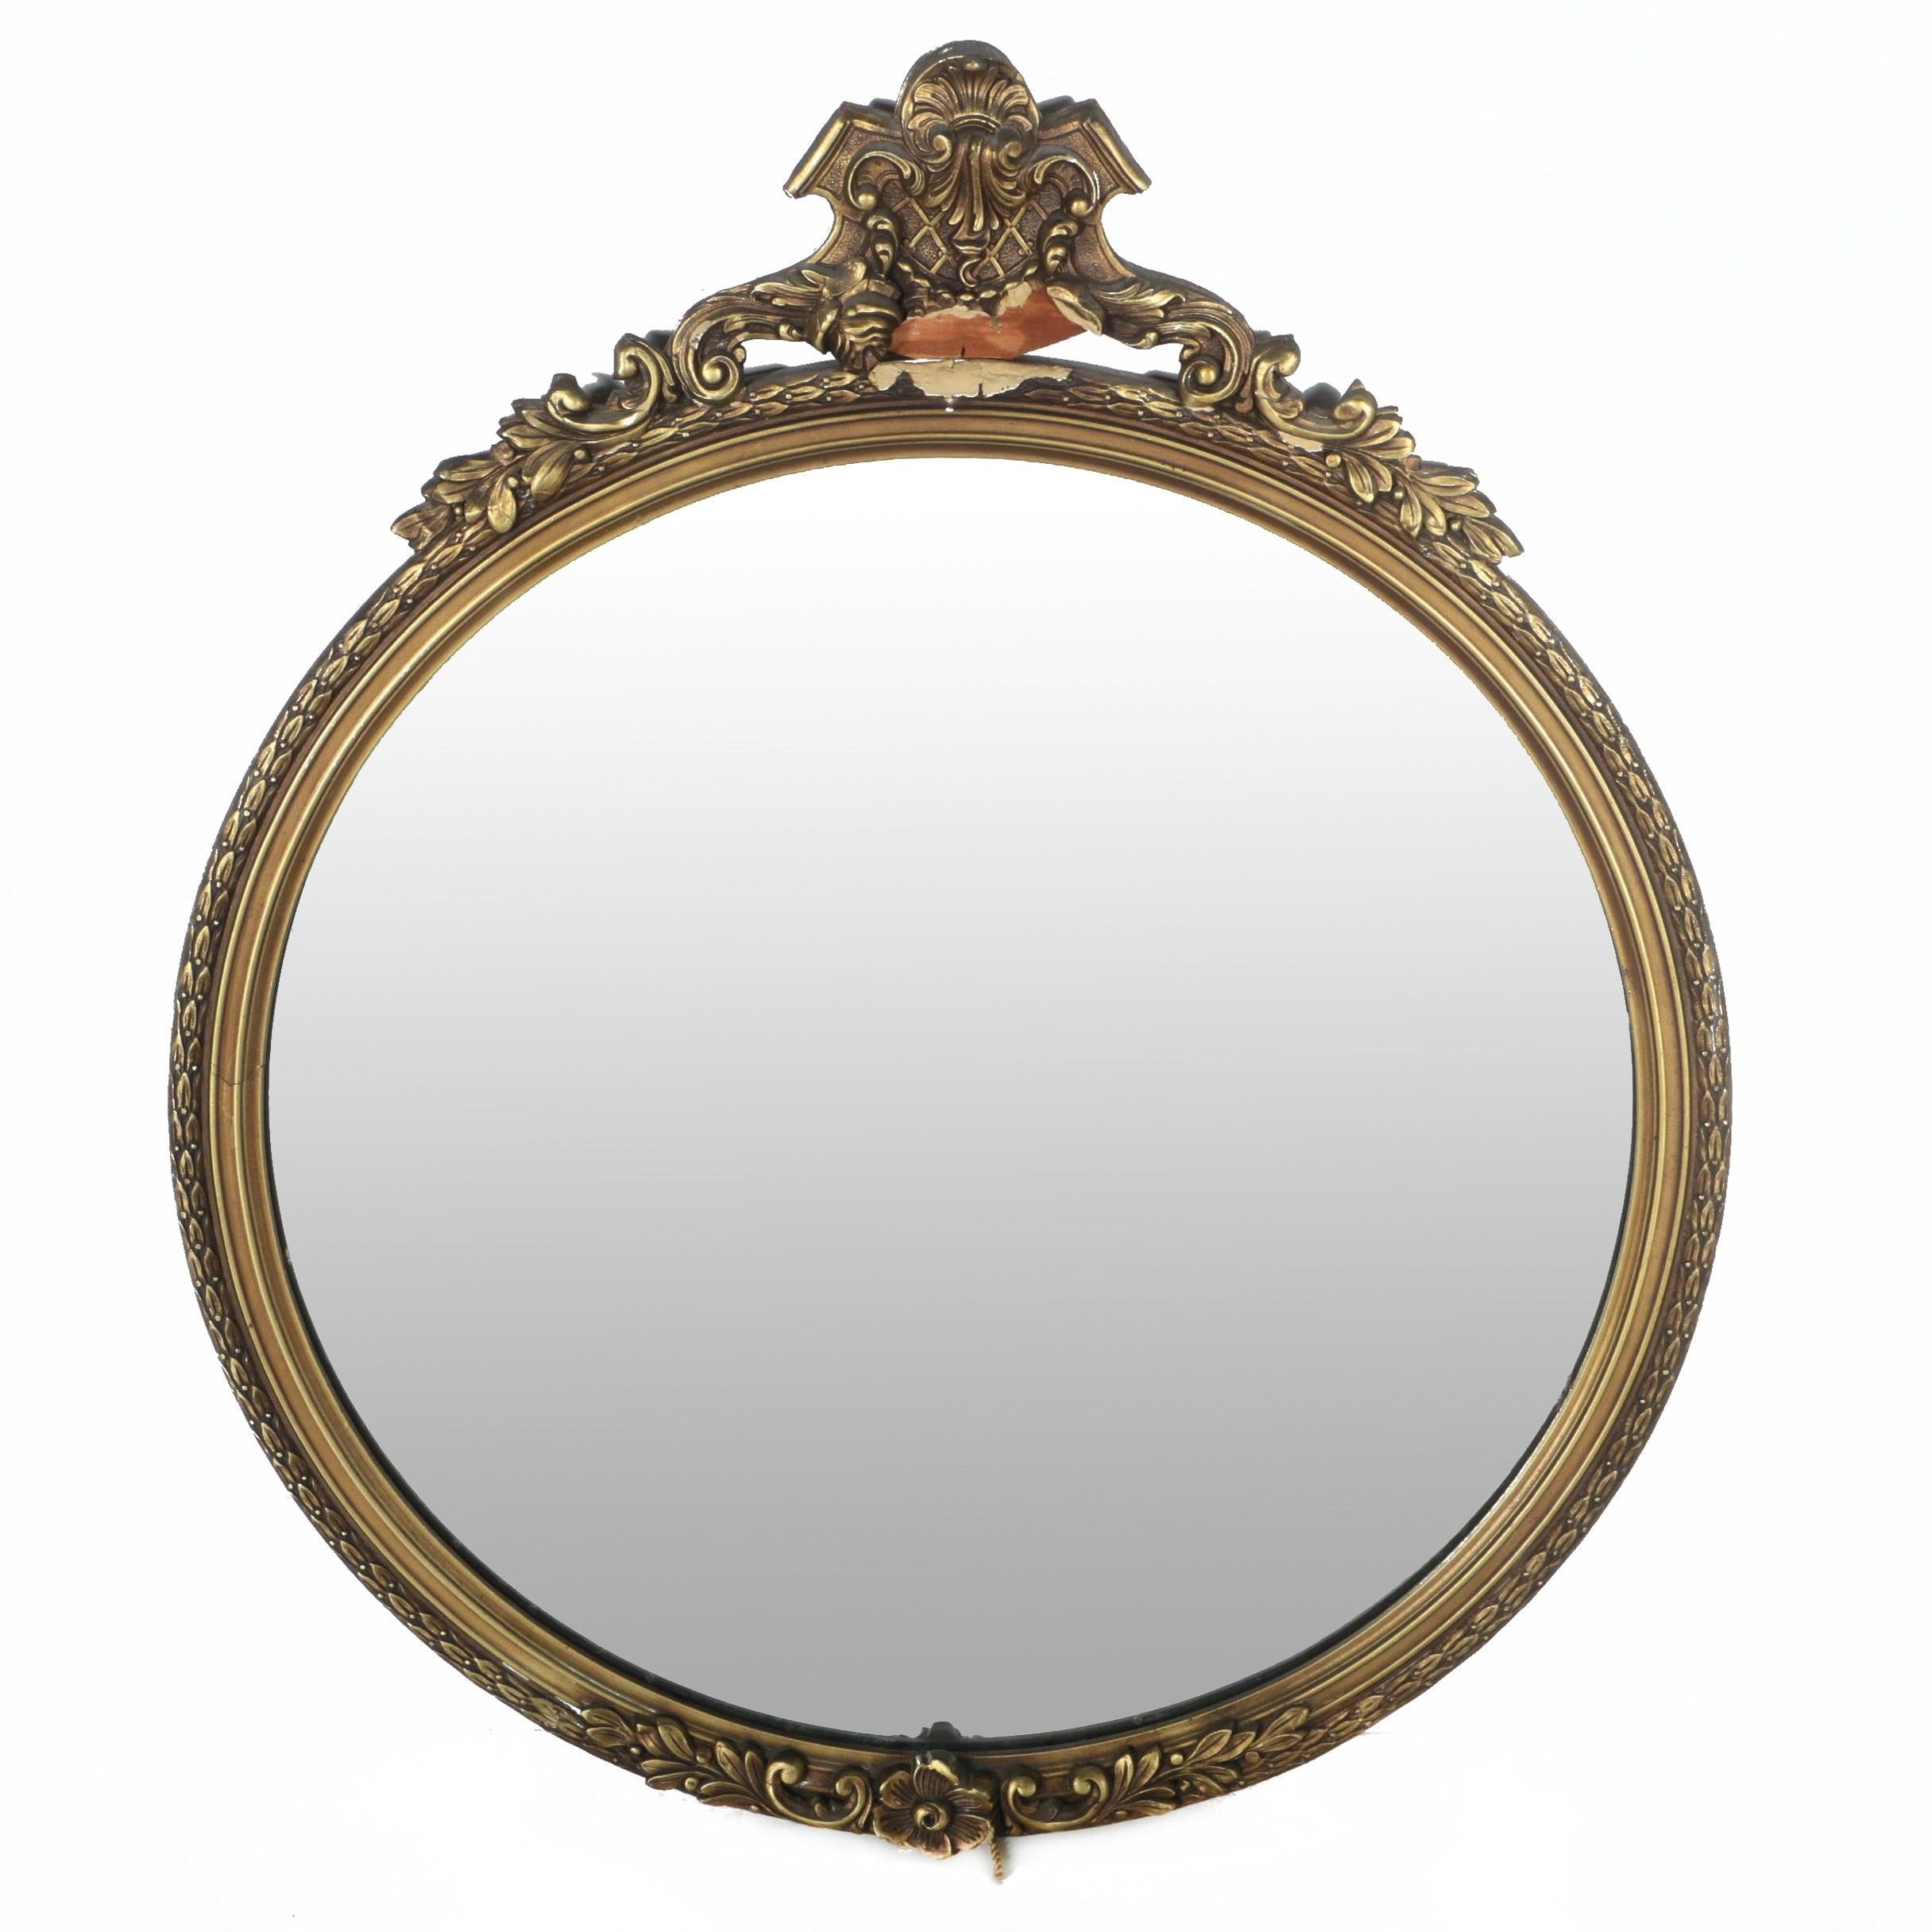 Round Wall Mirror with Venetian Style Wood Frame